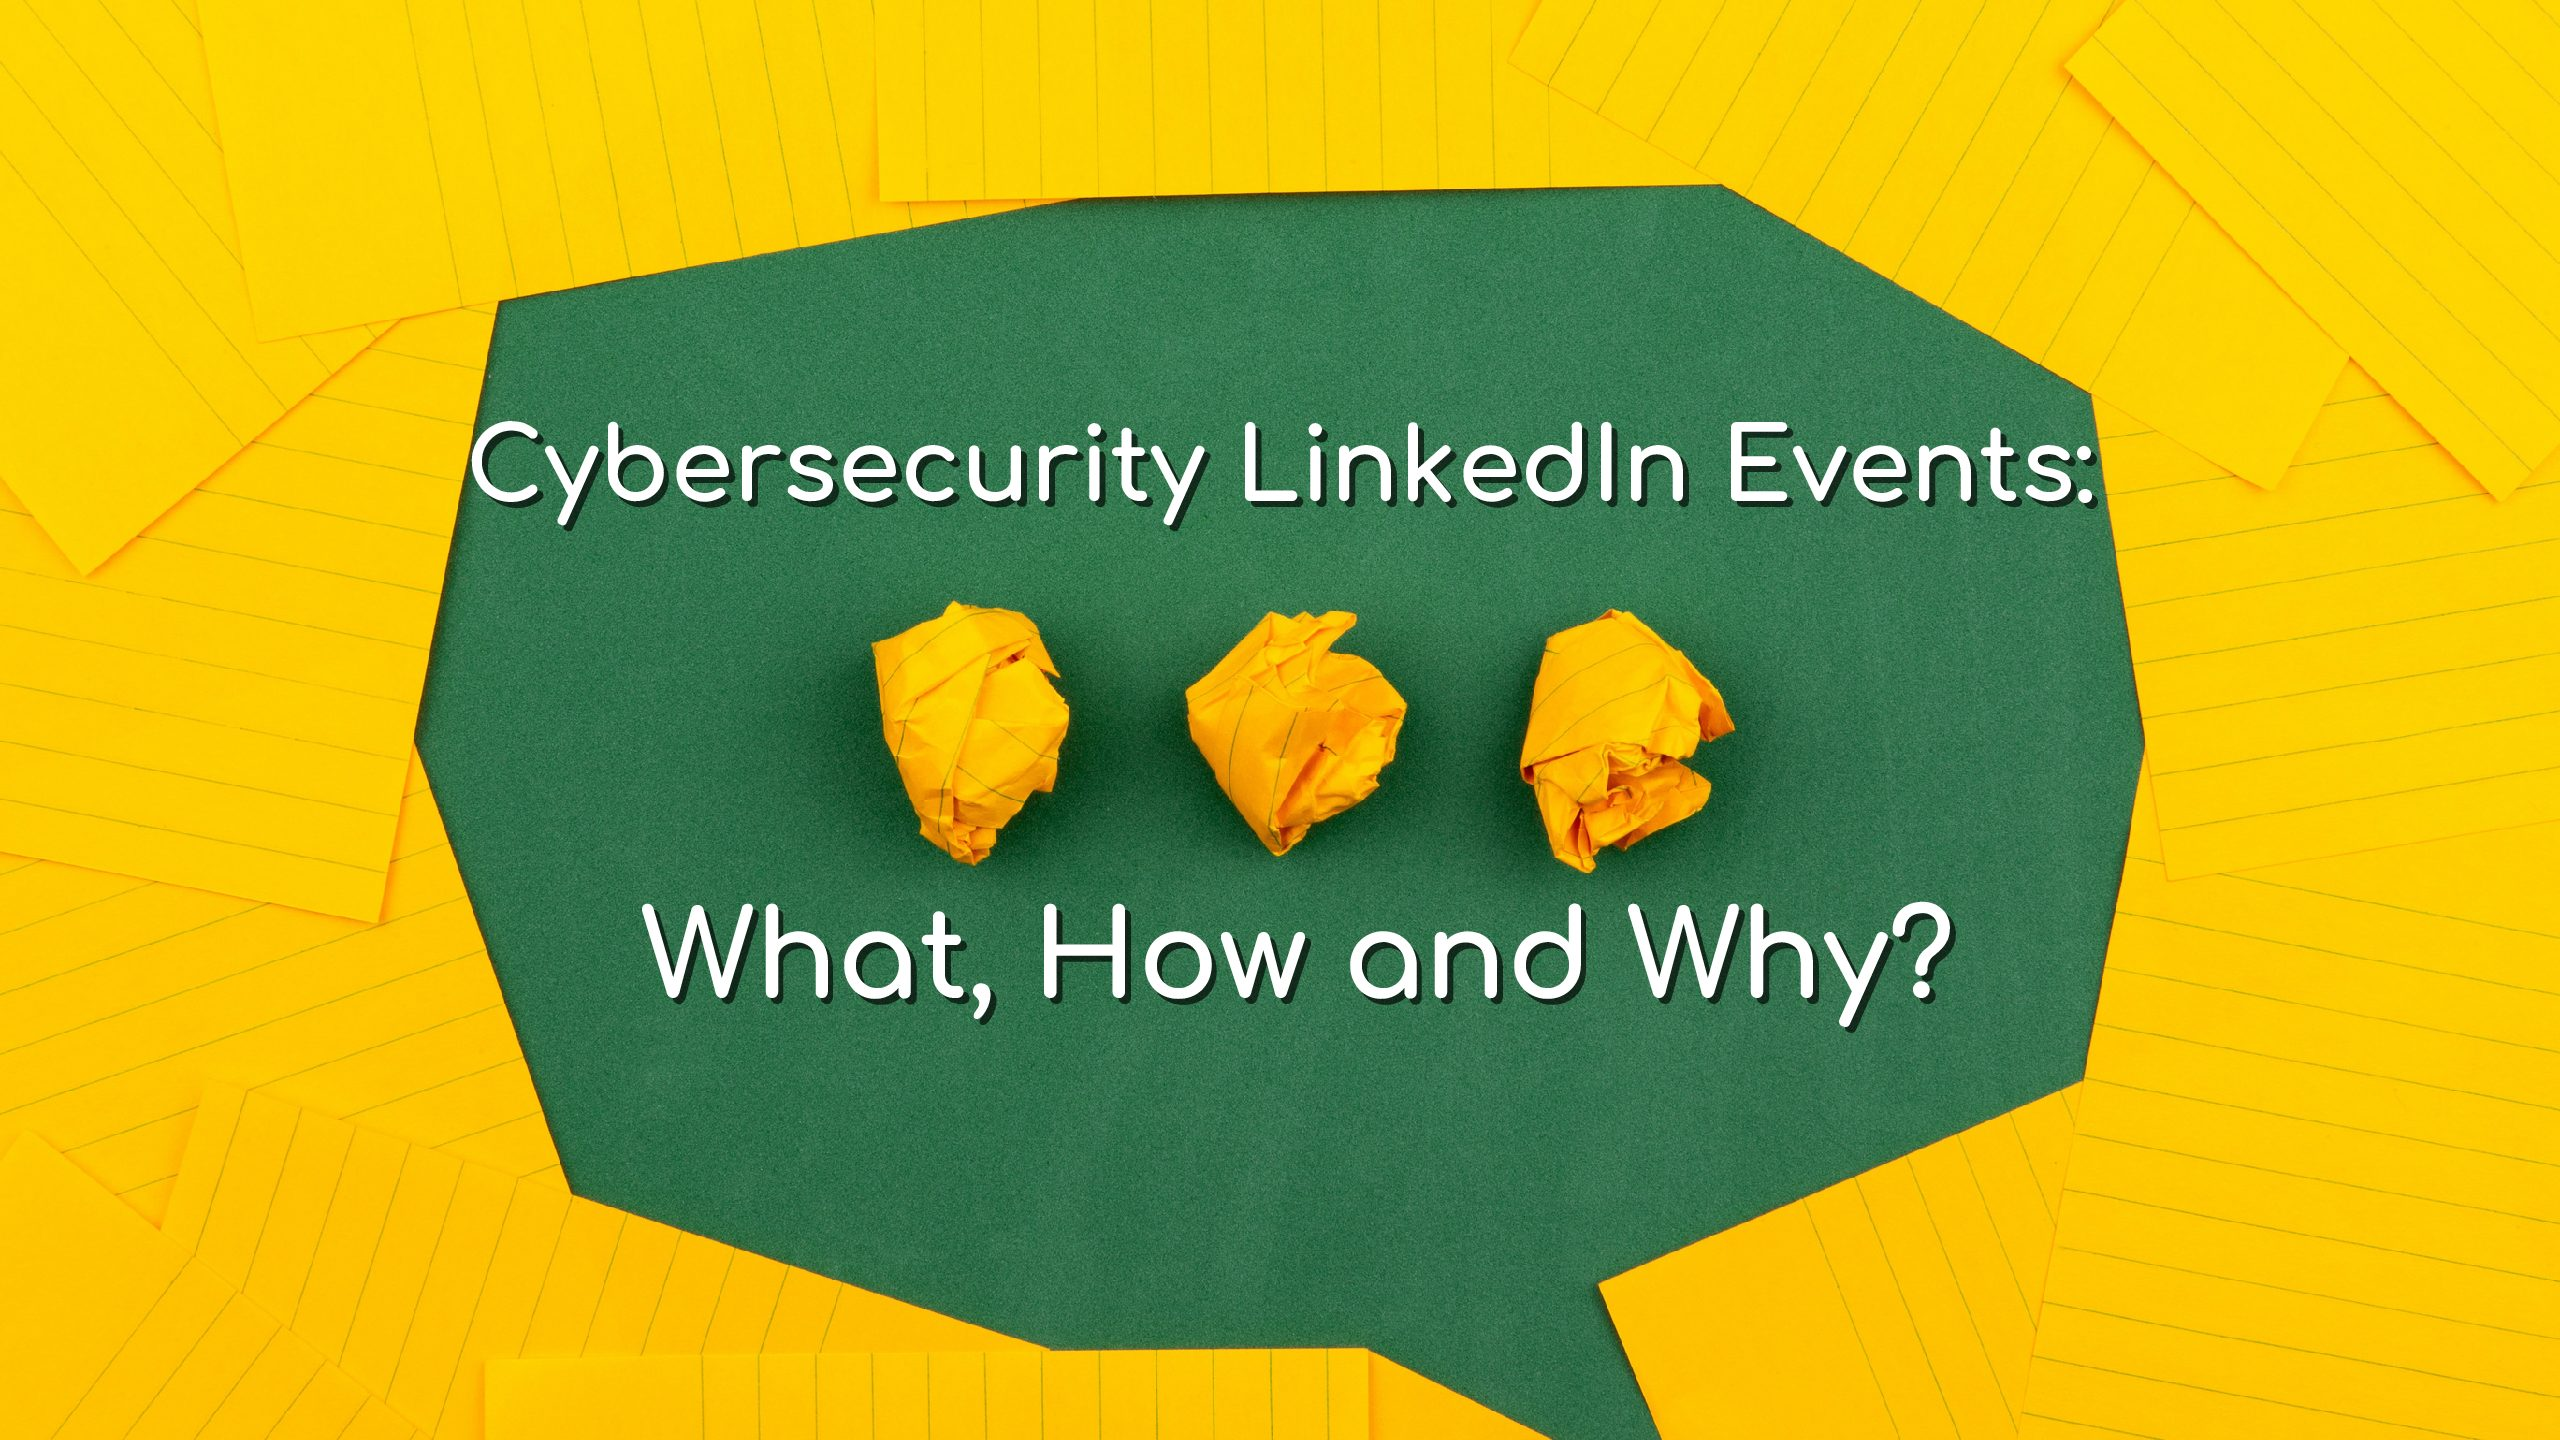 Create Cybersecurity LinkedIn Events: What, How and Why?